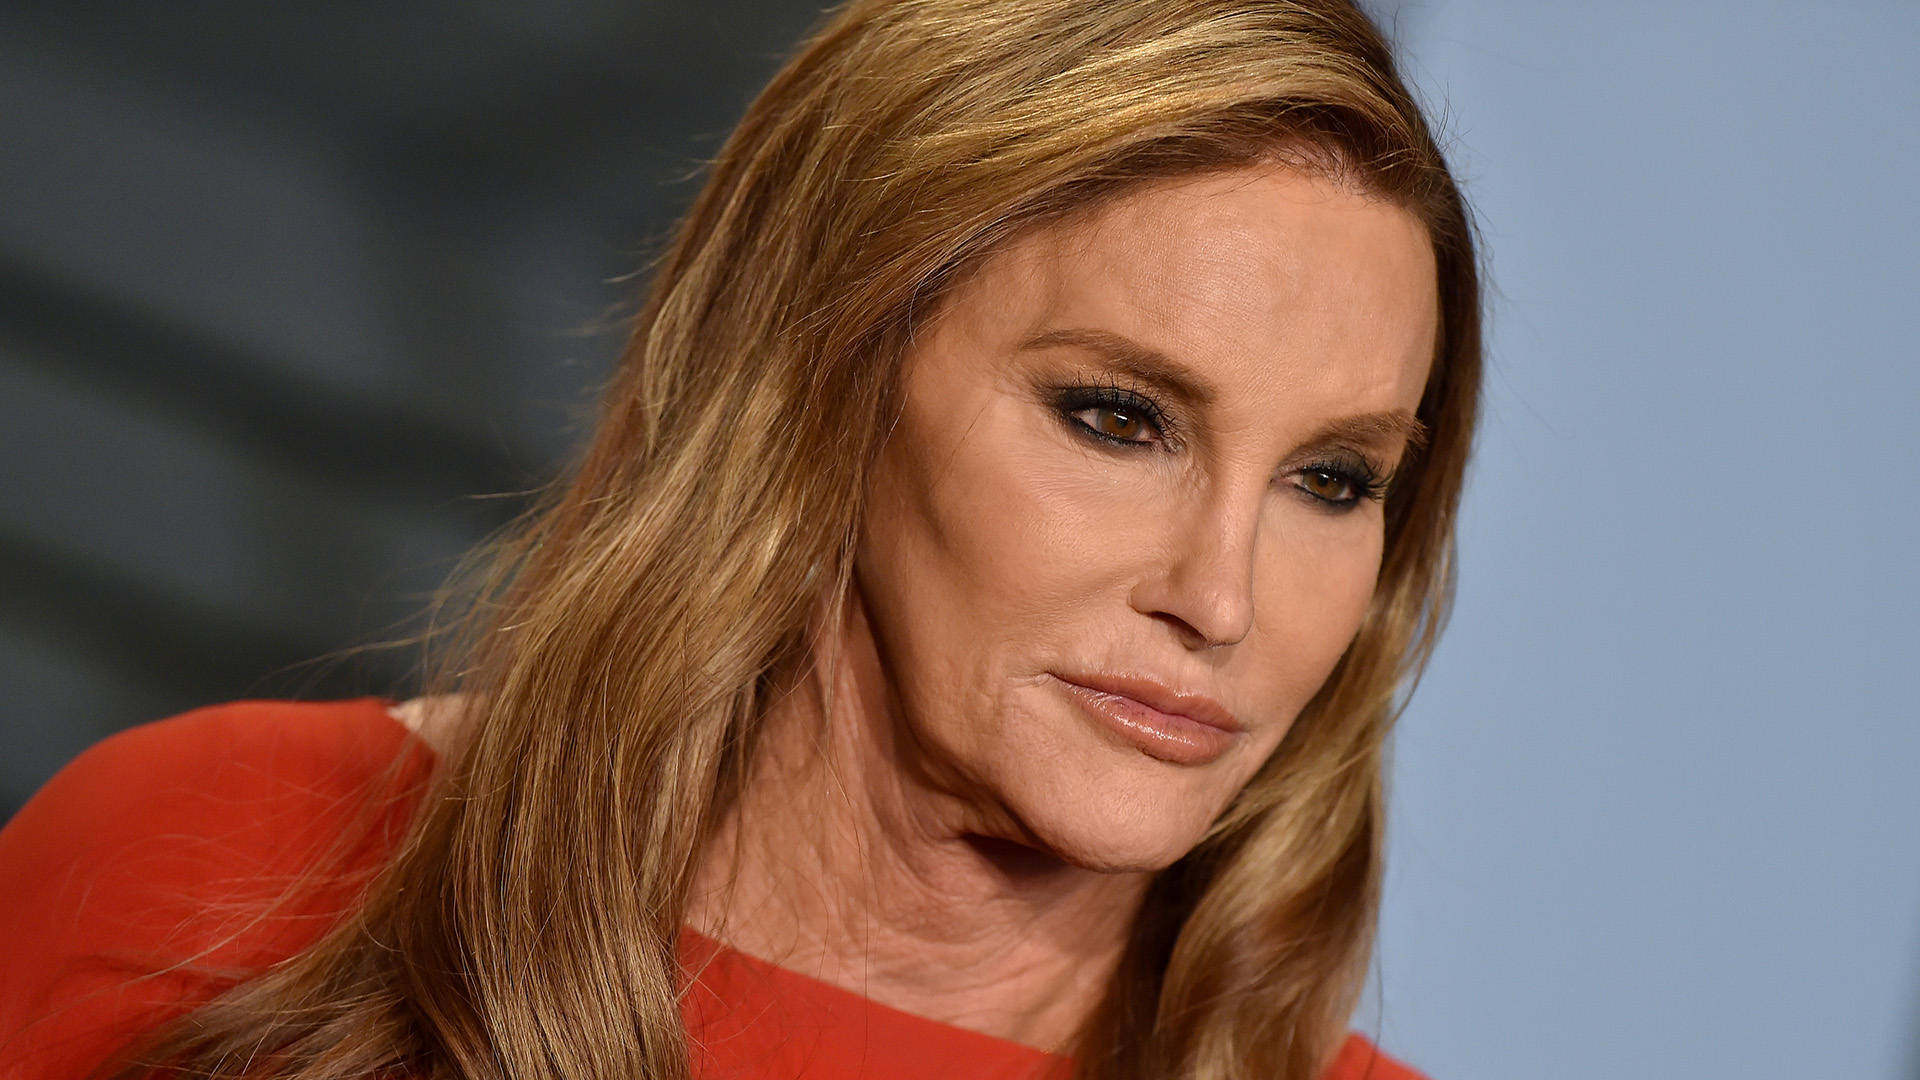 kuwtk-caitlyn-jenner-dragged-on-social-media-after-she-and-donald-trump-jr-bully-asst-health-secretary-rachel-levine-over-her-looks